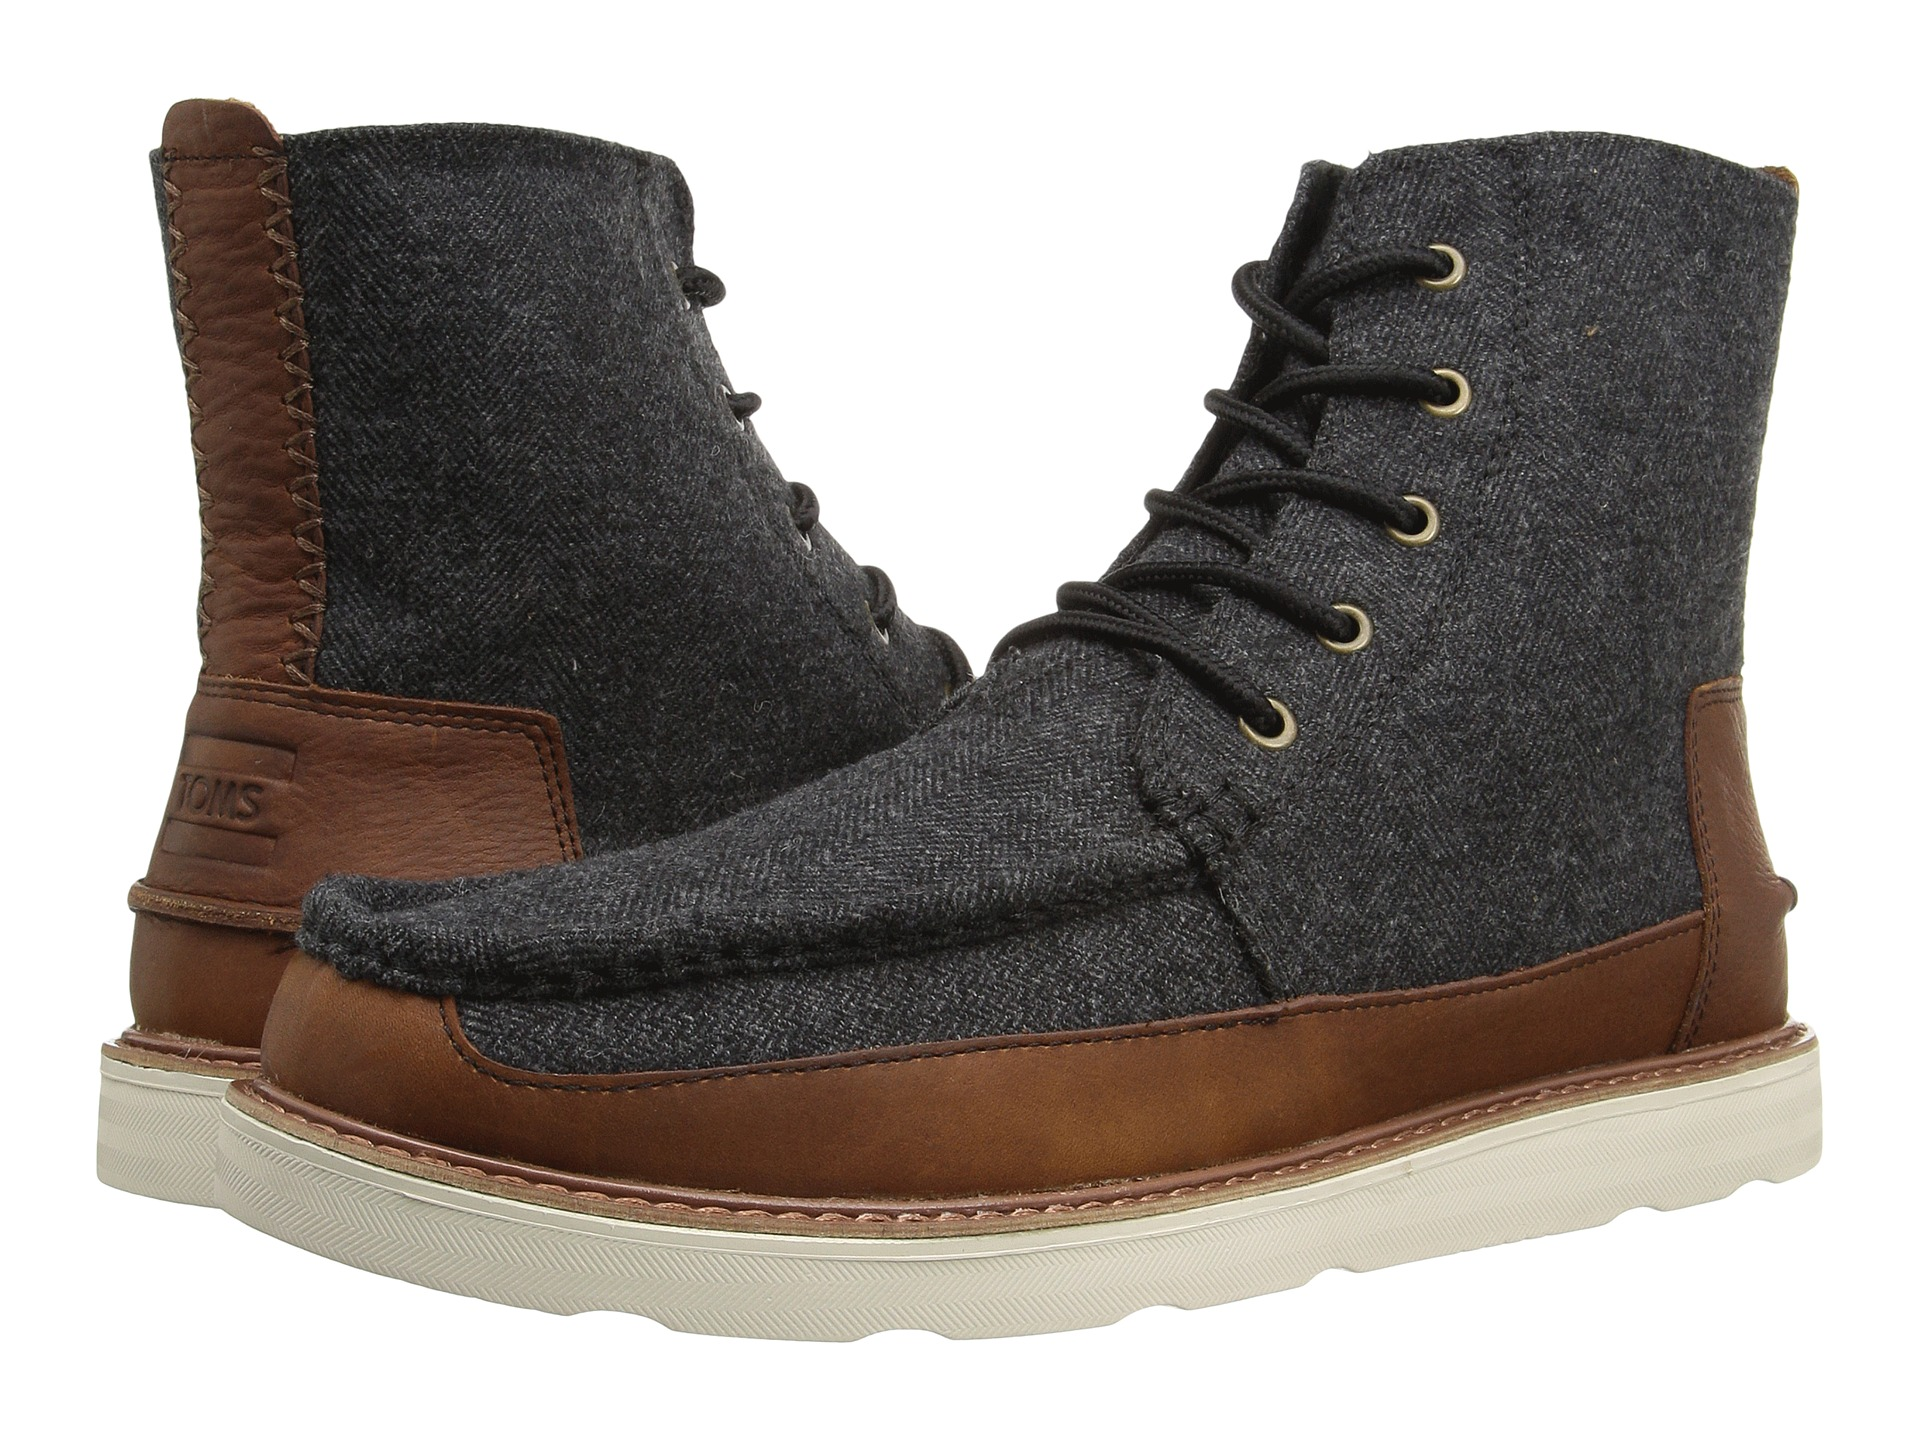 toms searcher boot grey herringbone brown leather zappos